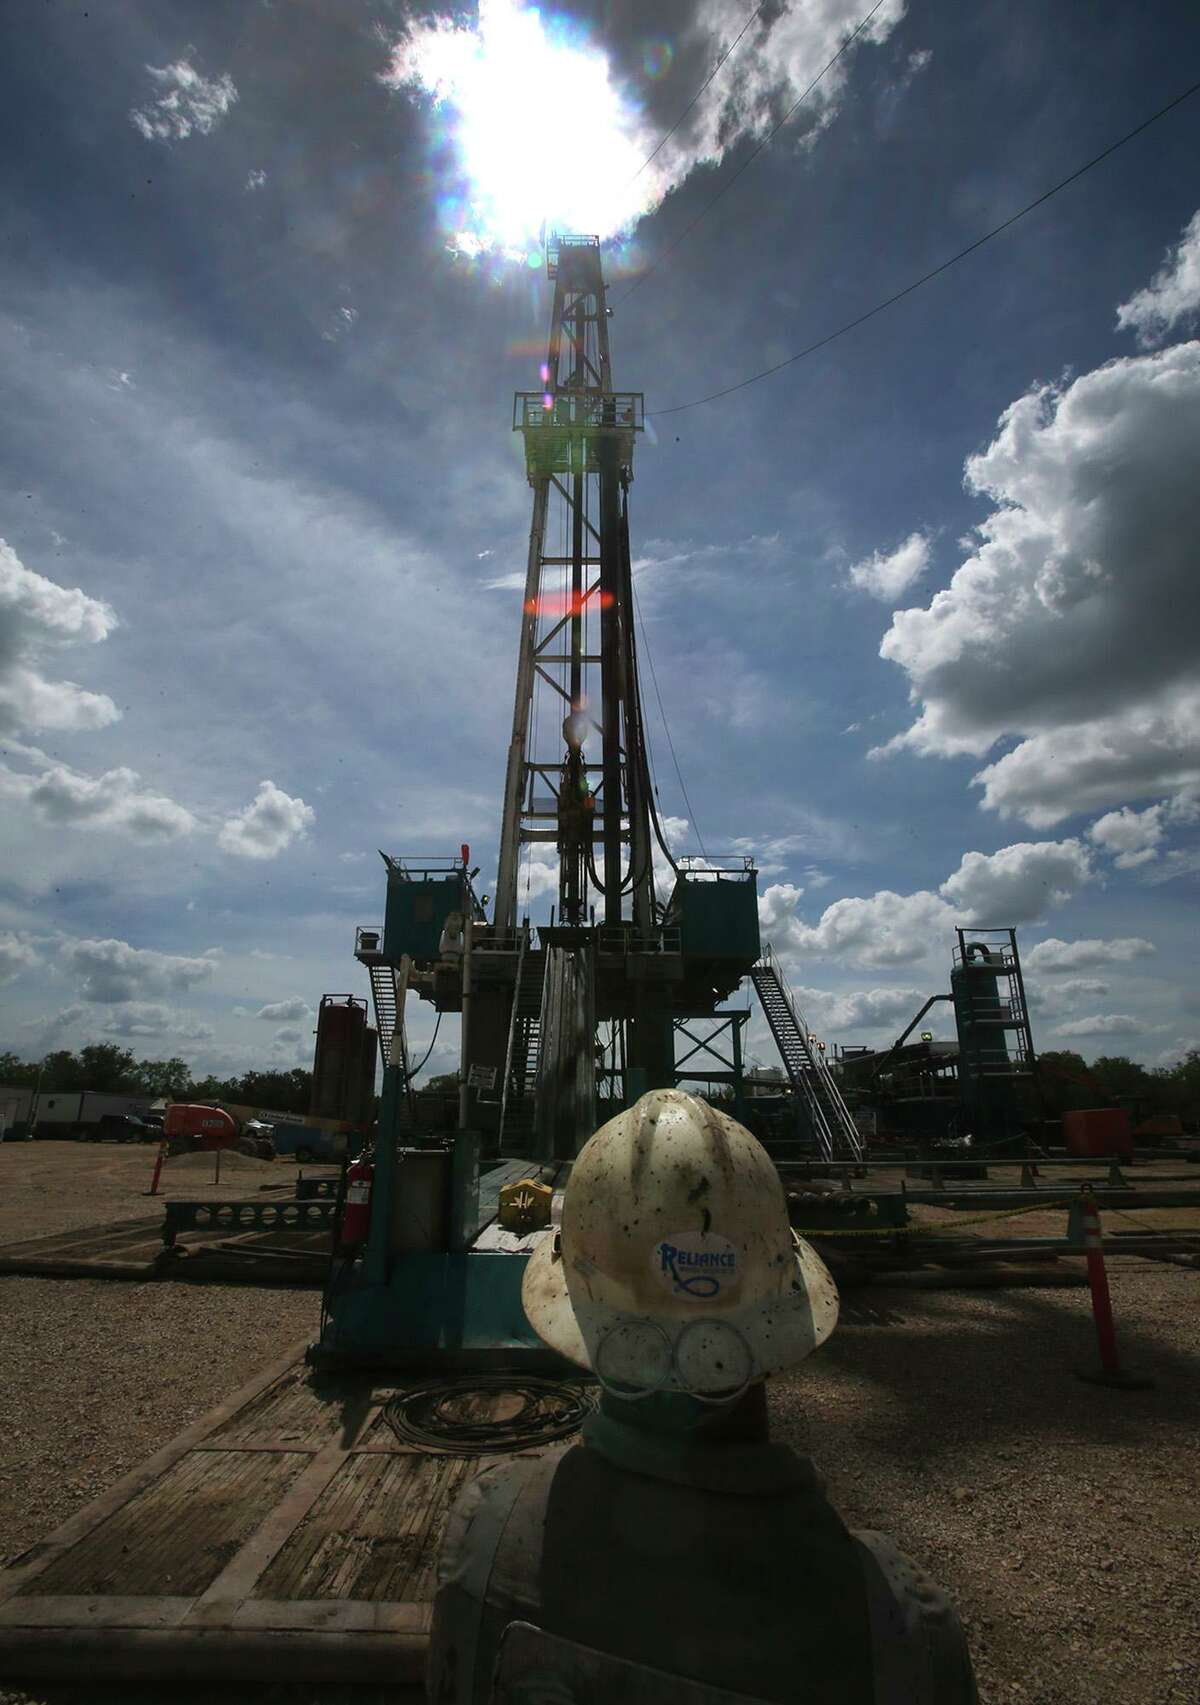 Floor hand Robert Baker looks at Abraxas Petroleum's Bullseye 101H well being drilled on Monday June 27, 2016 in the Austin Chalk formation in Atascosa County near Jourdanton, Texas.